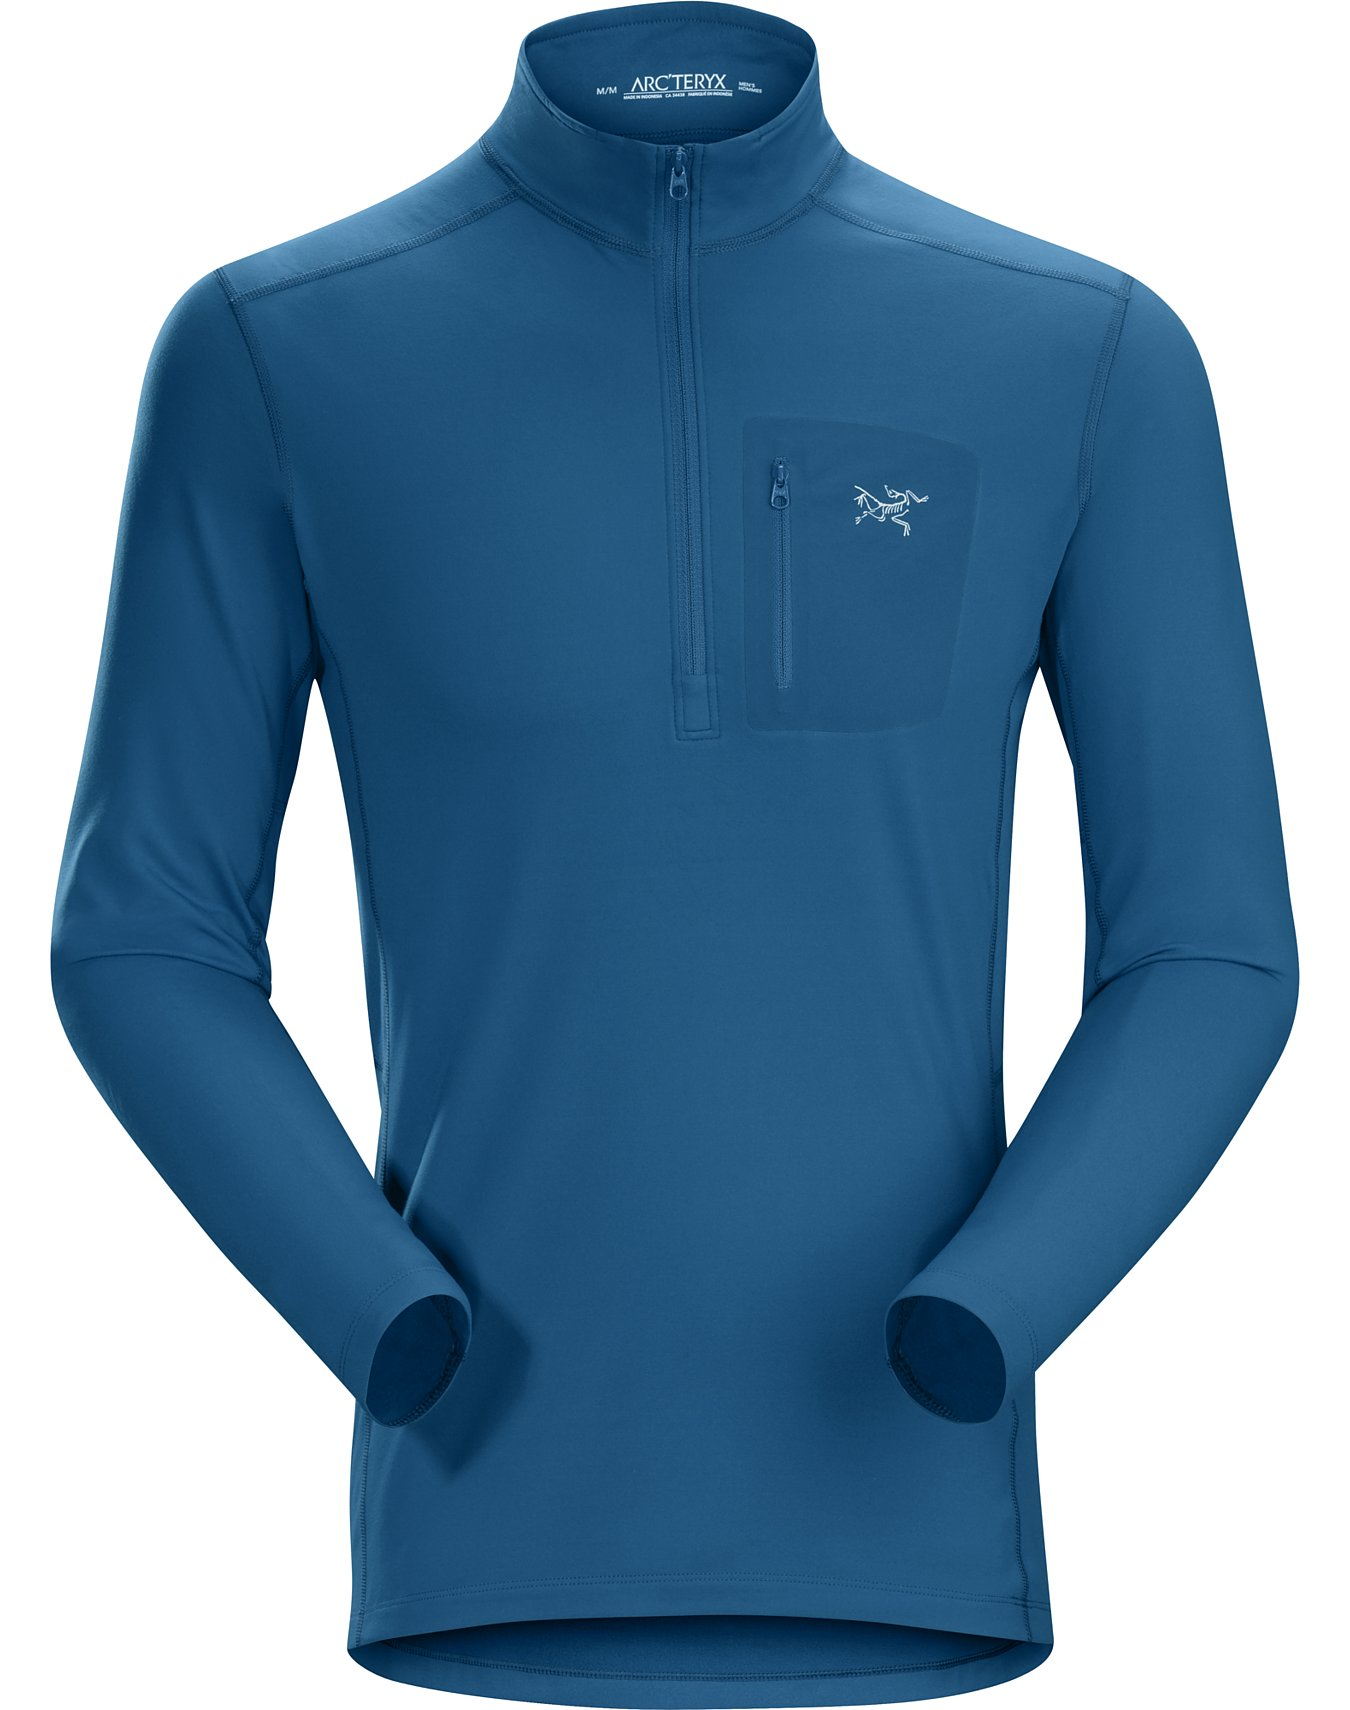 Long Sleeve Top SUB Sports COLD Mens Fitted Merino Wool Base Layer